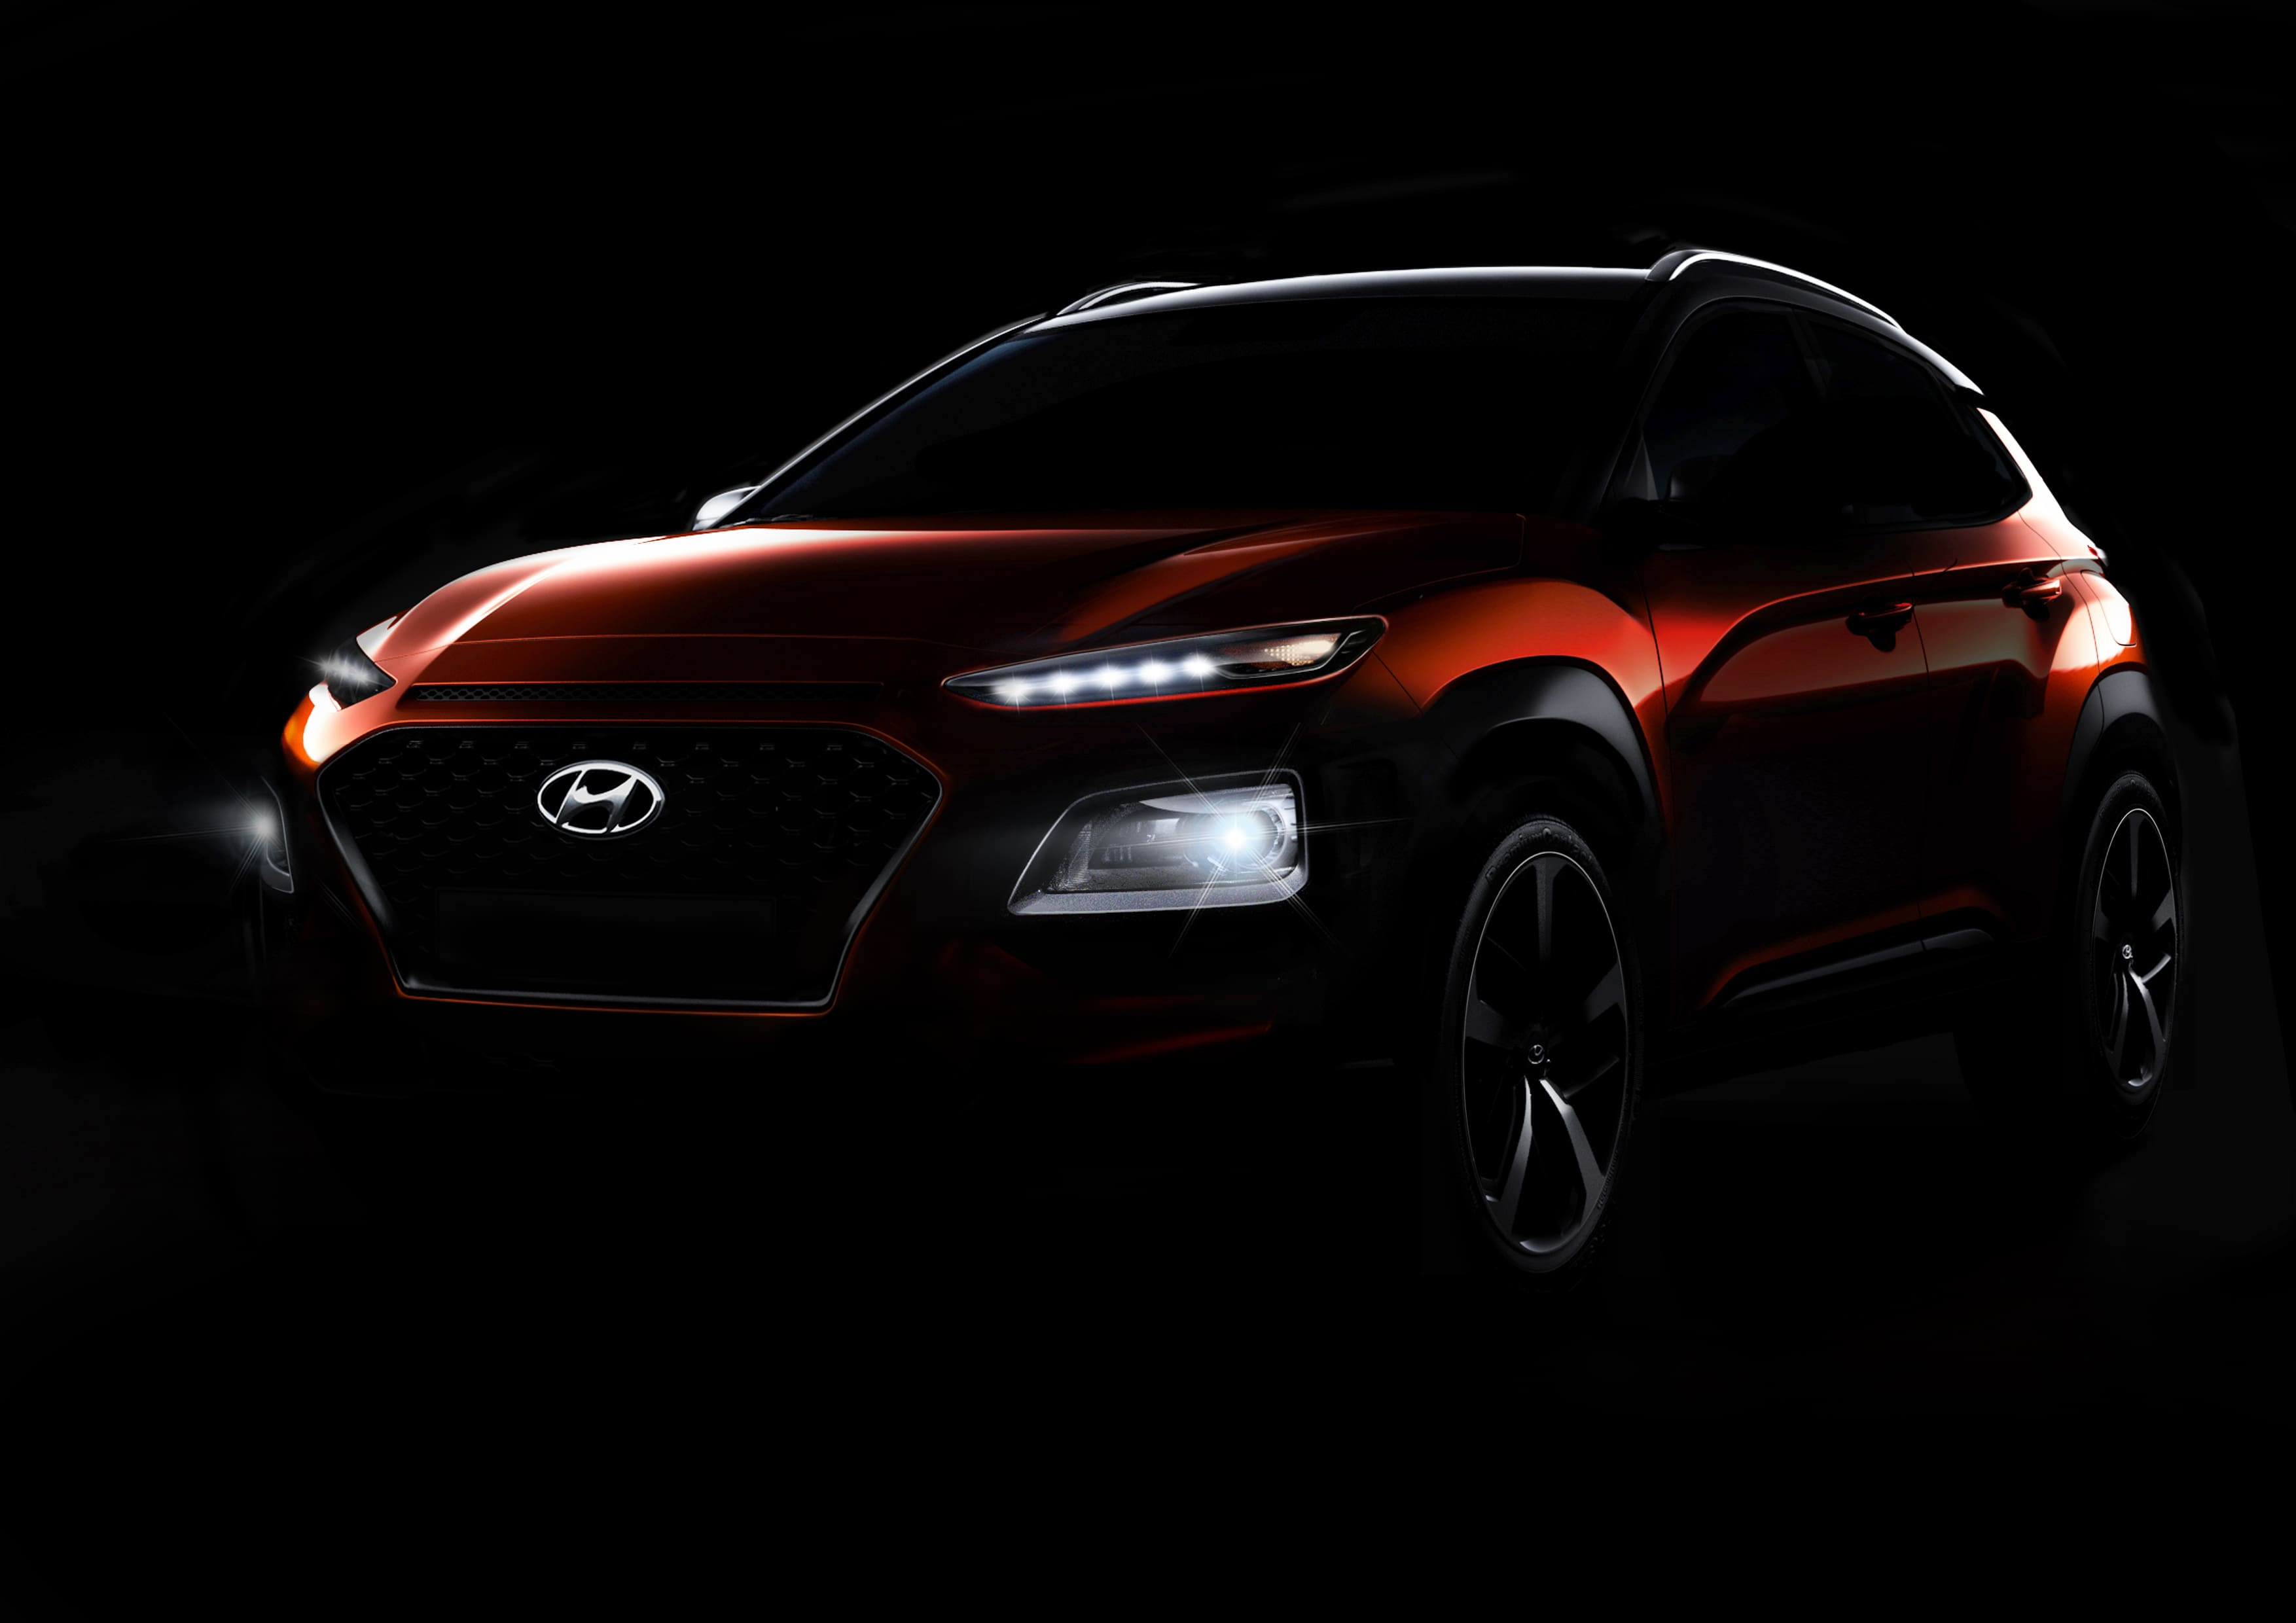 Hyundai Motor Reveals Progressive Character of All-New SUV in Kona Teaser Video